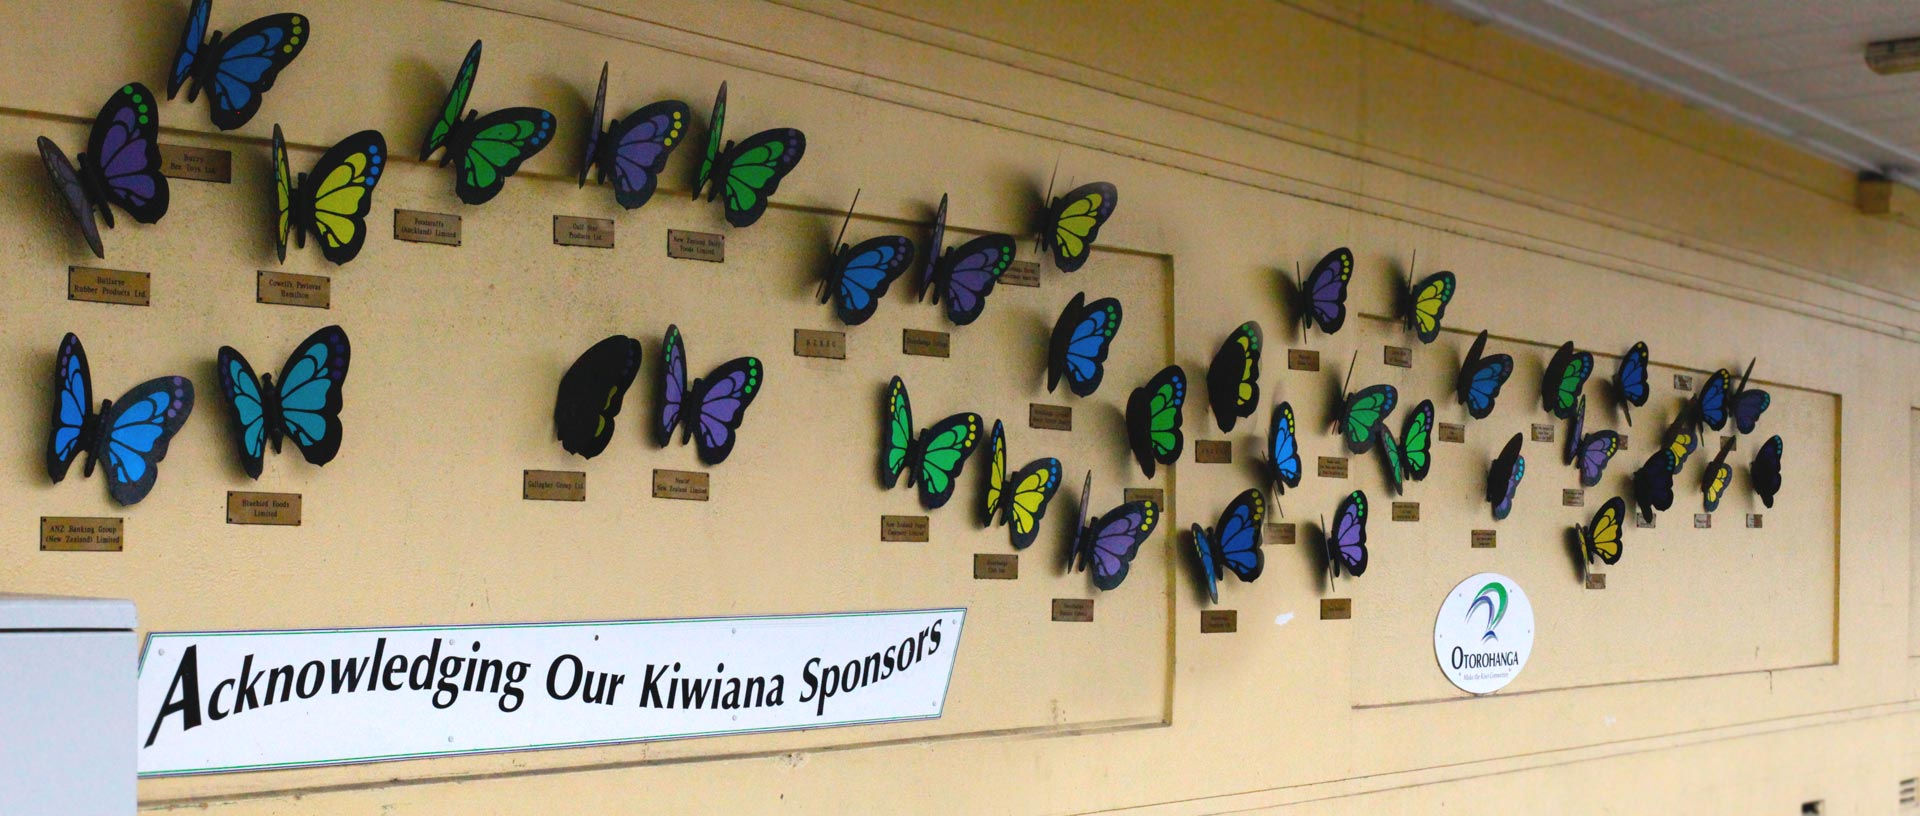 SEE OUR BUTTERFLY WALL